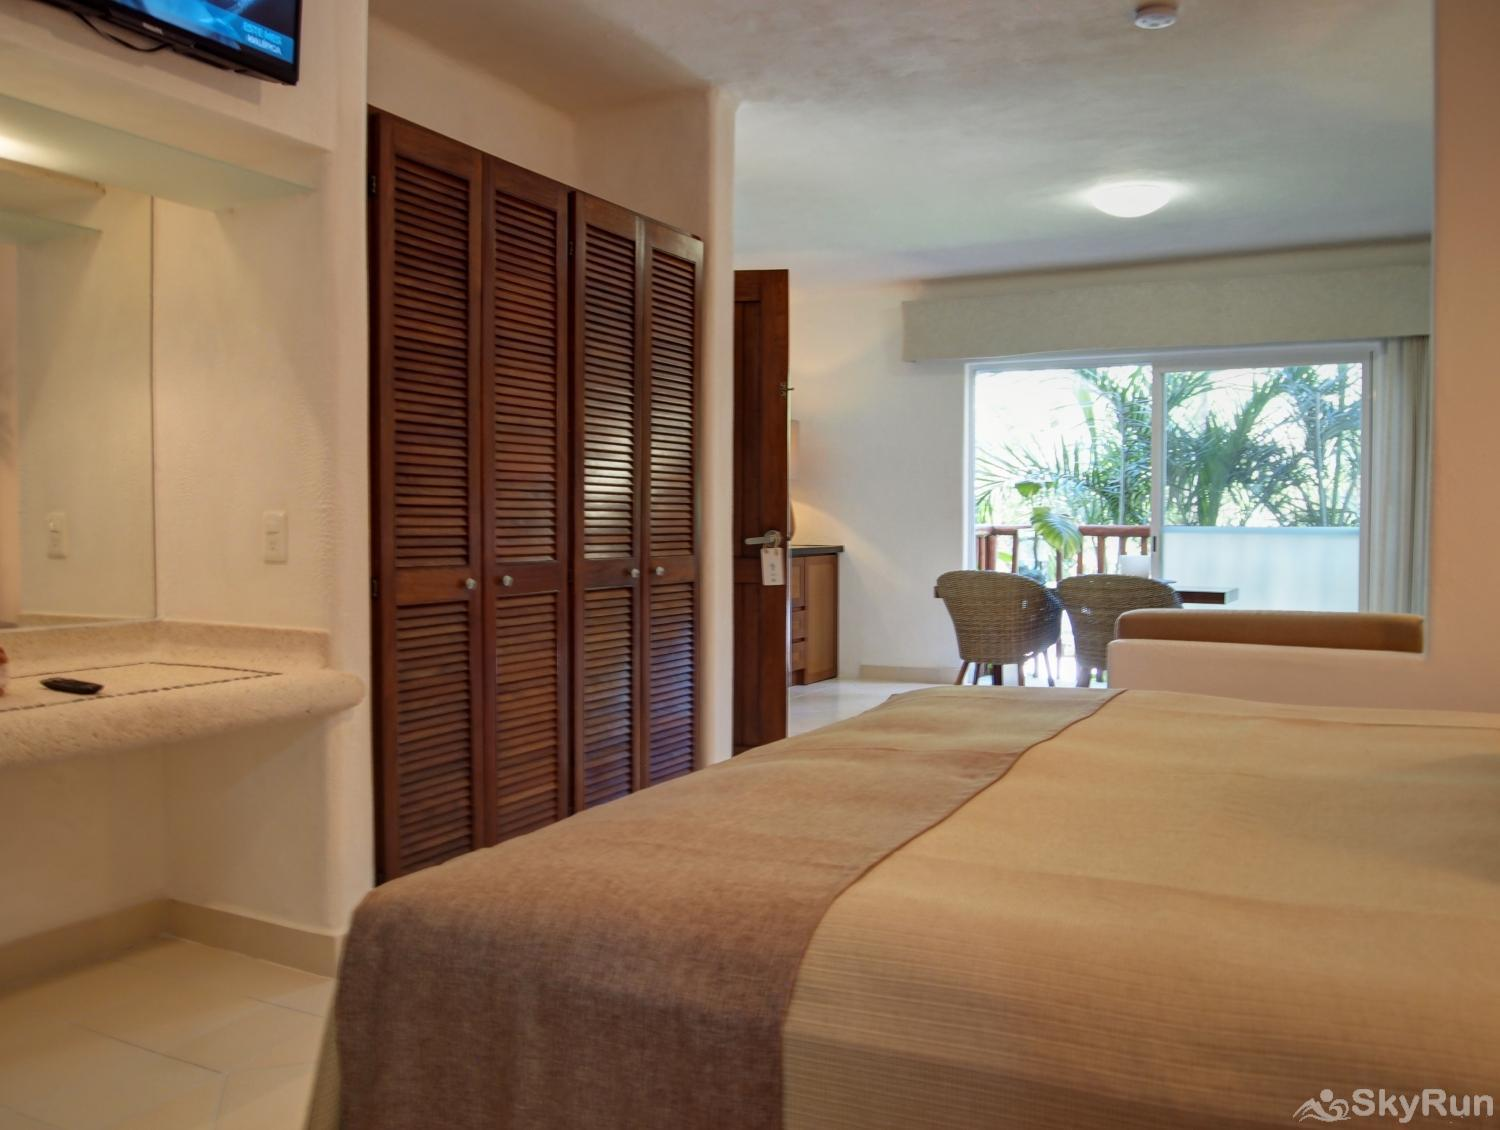 Las Villas Akumal 108  3 Bedroom Beachfront Second Floor Queen Bedroom with small living room